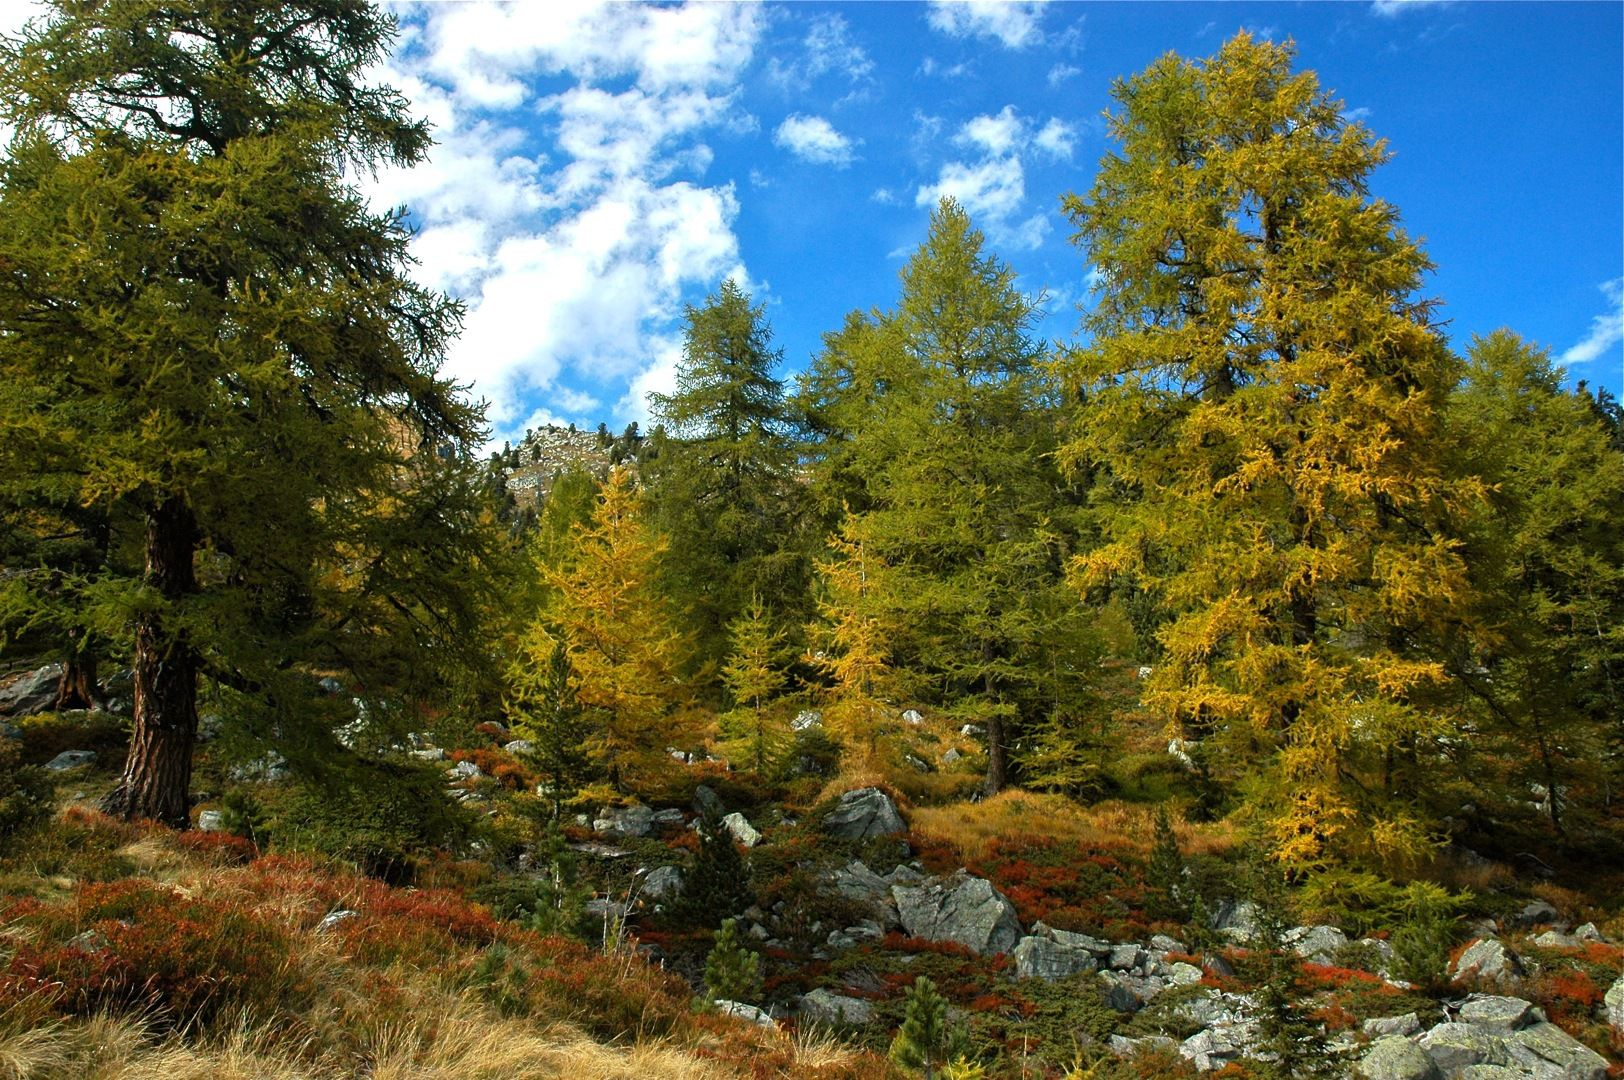 The European larch. © Les jardiniers du possible, Flickr CC